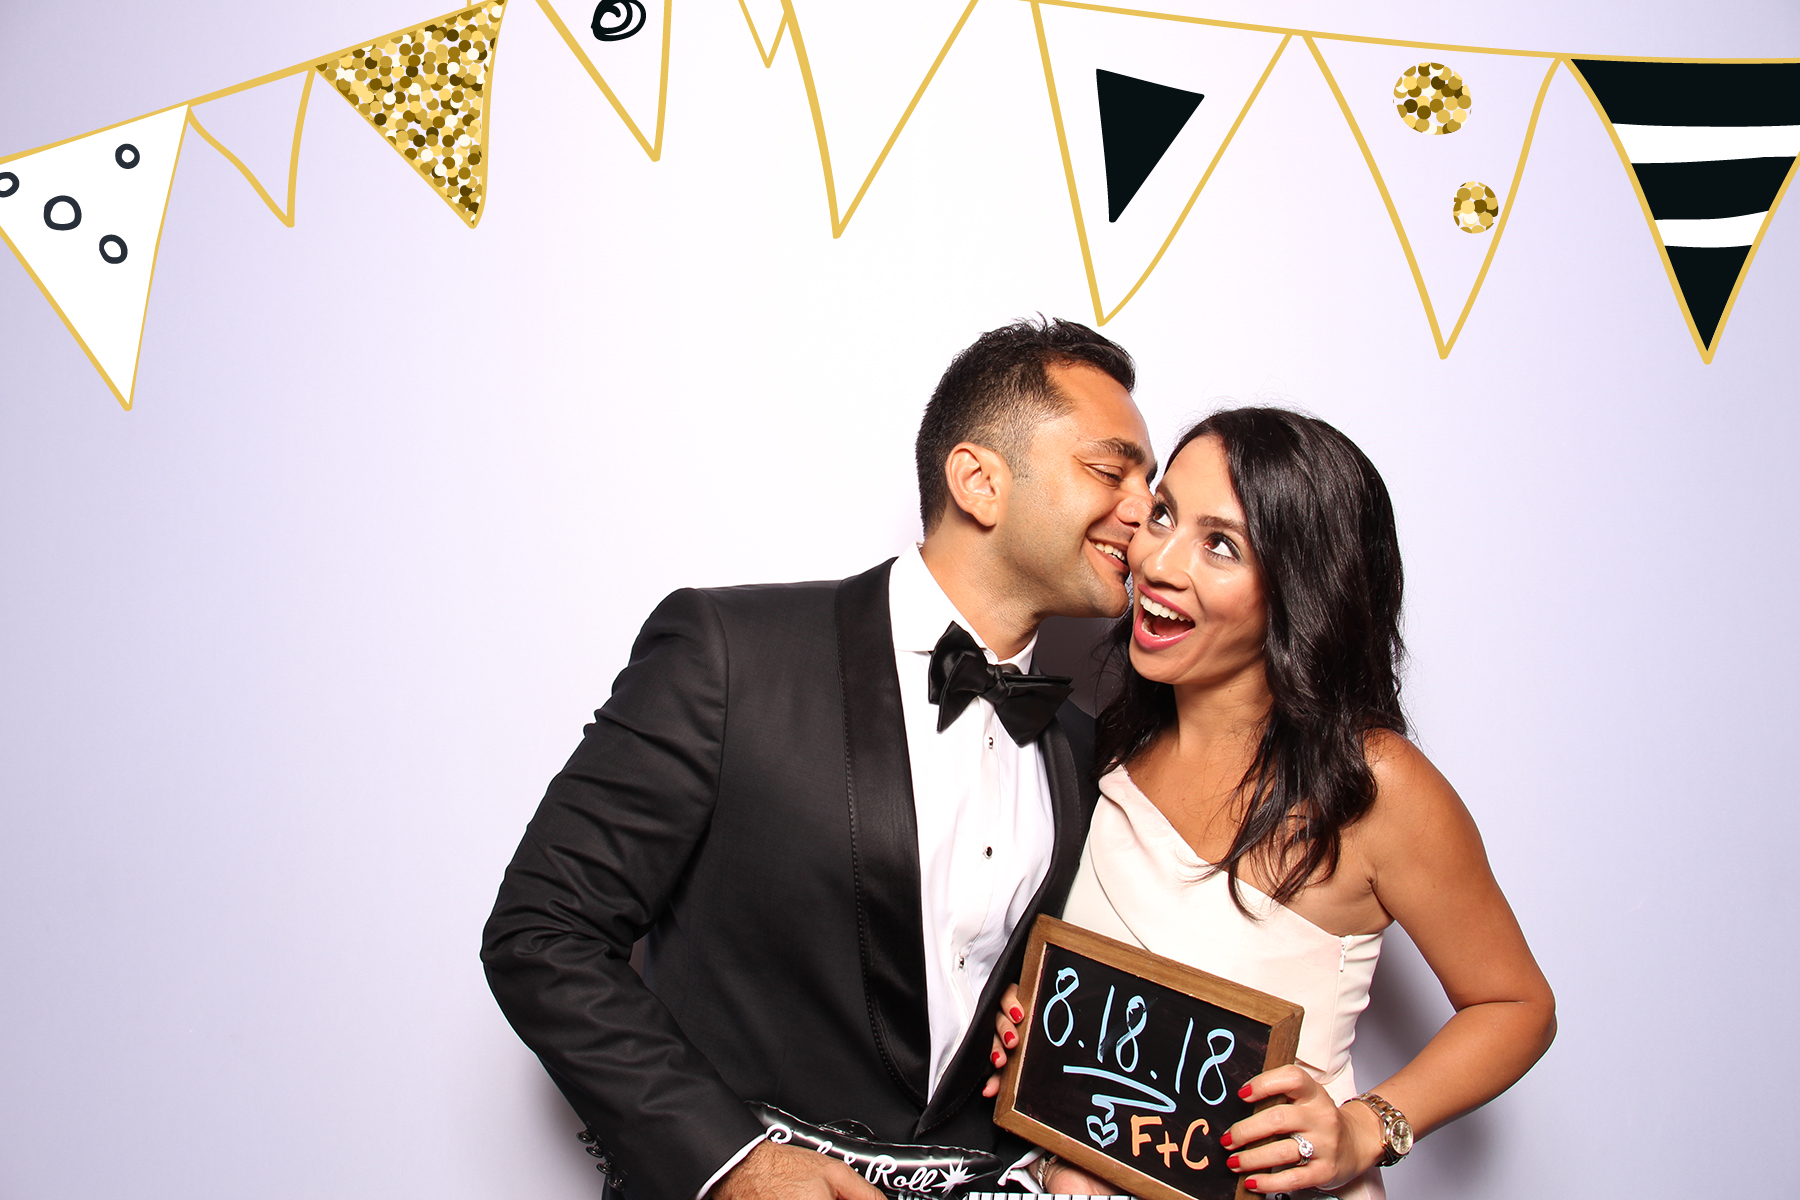 Glitter Wedding Photo Booth.jpg